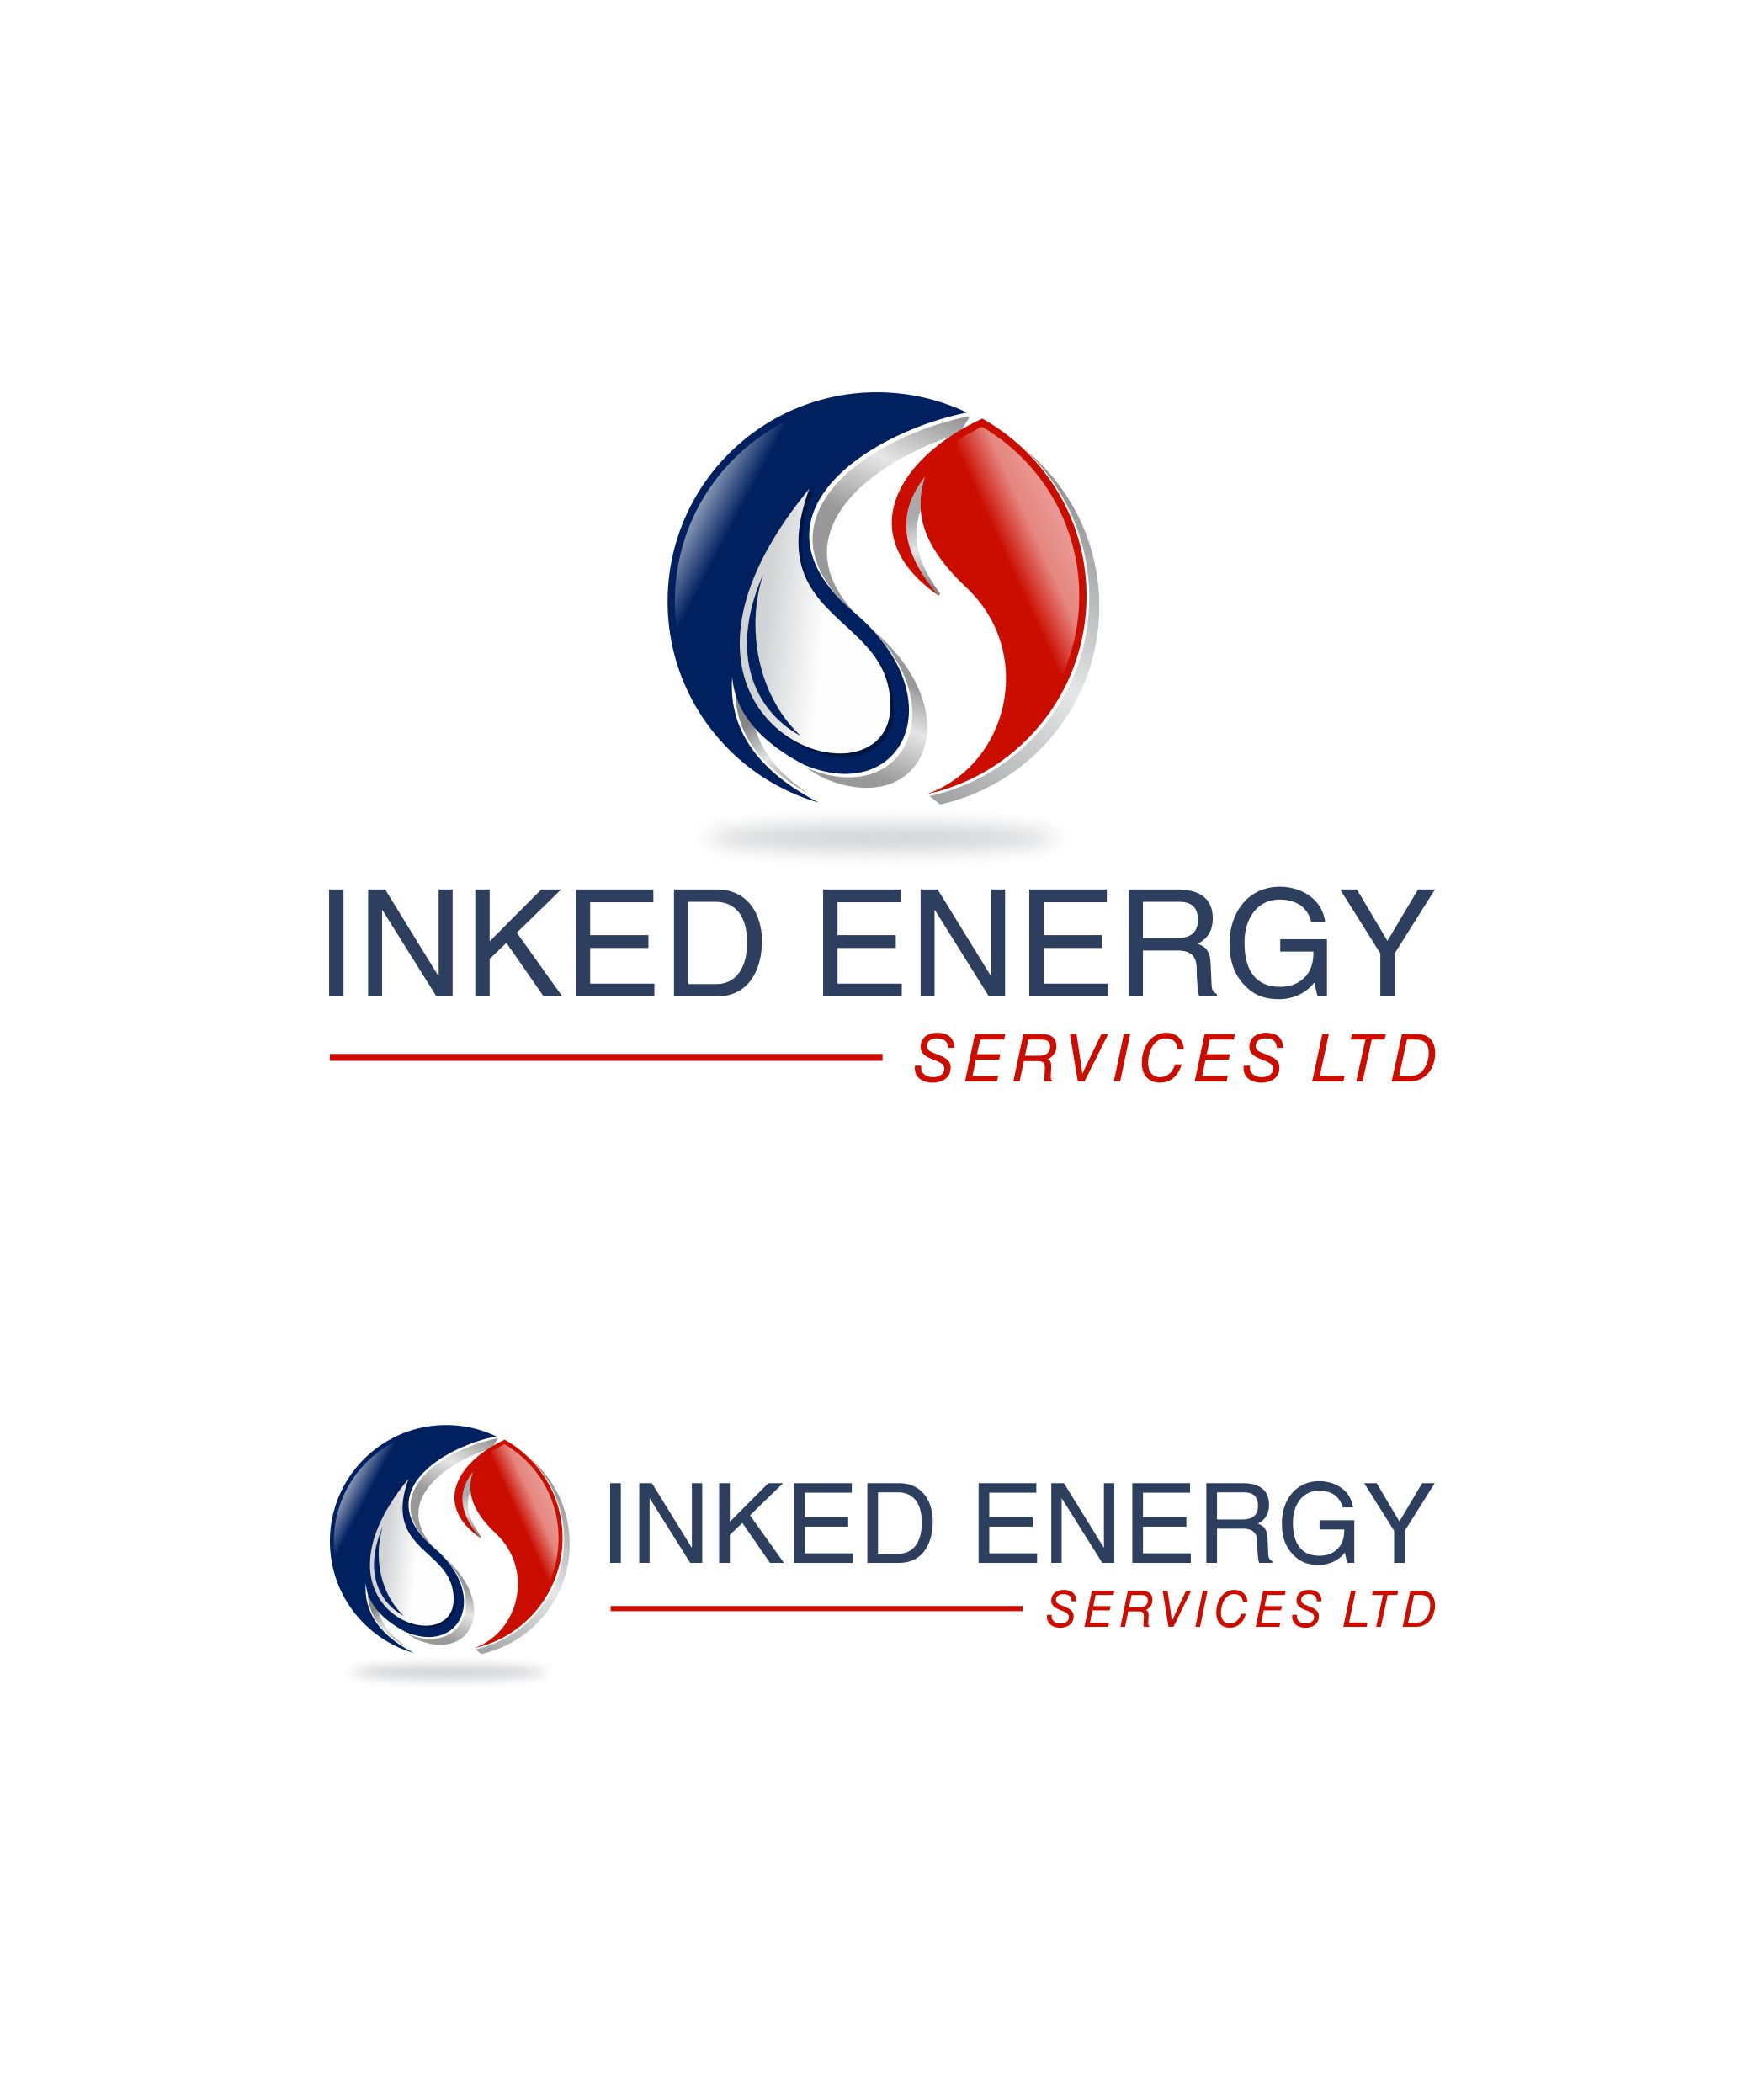 Logo Design by Raymond Garcia - Entry No. 48 in the Logo Design Contest Creative Logo Design for INKED ENERGY SERVICES LTD.